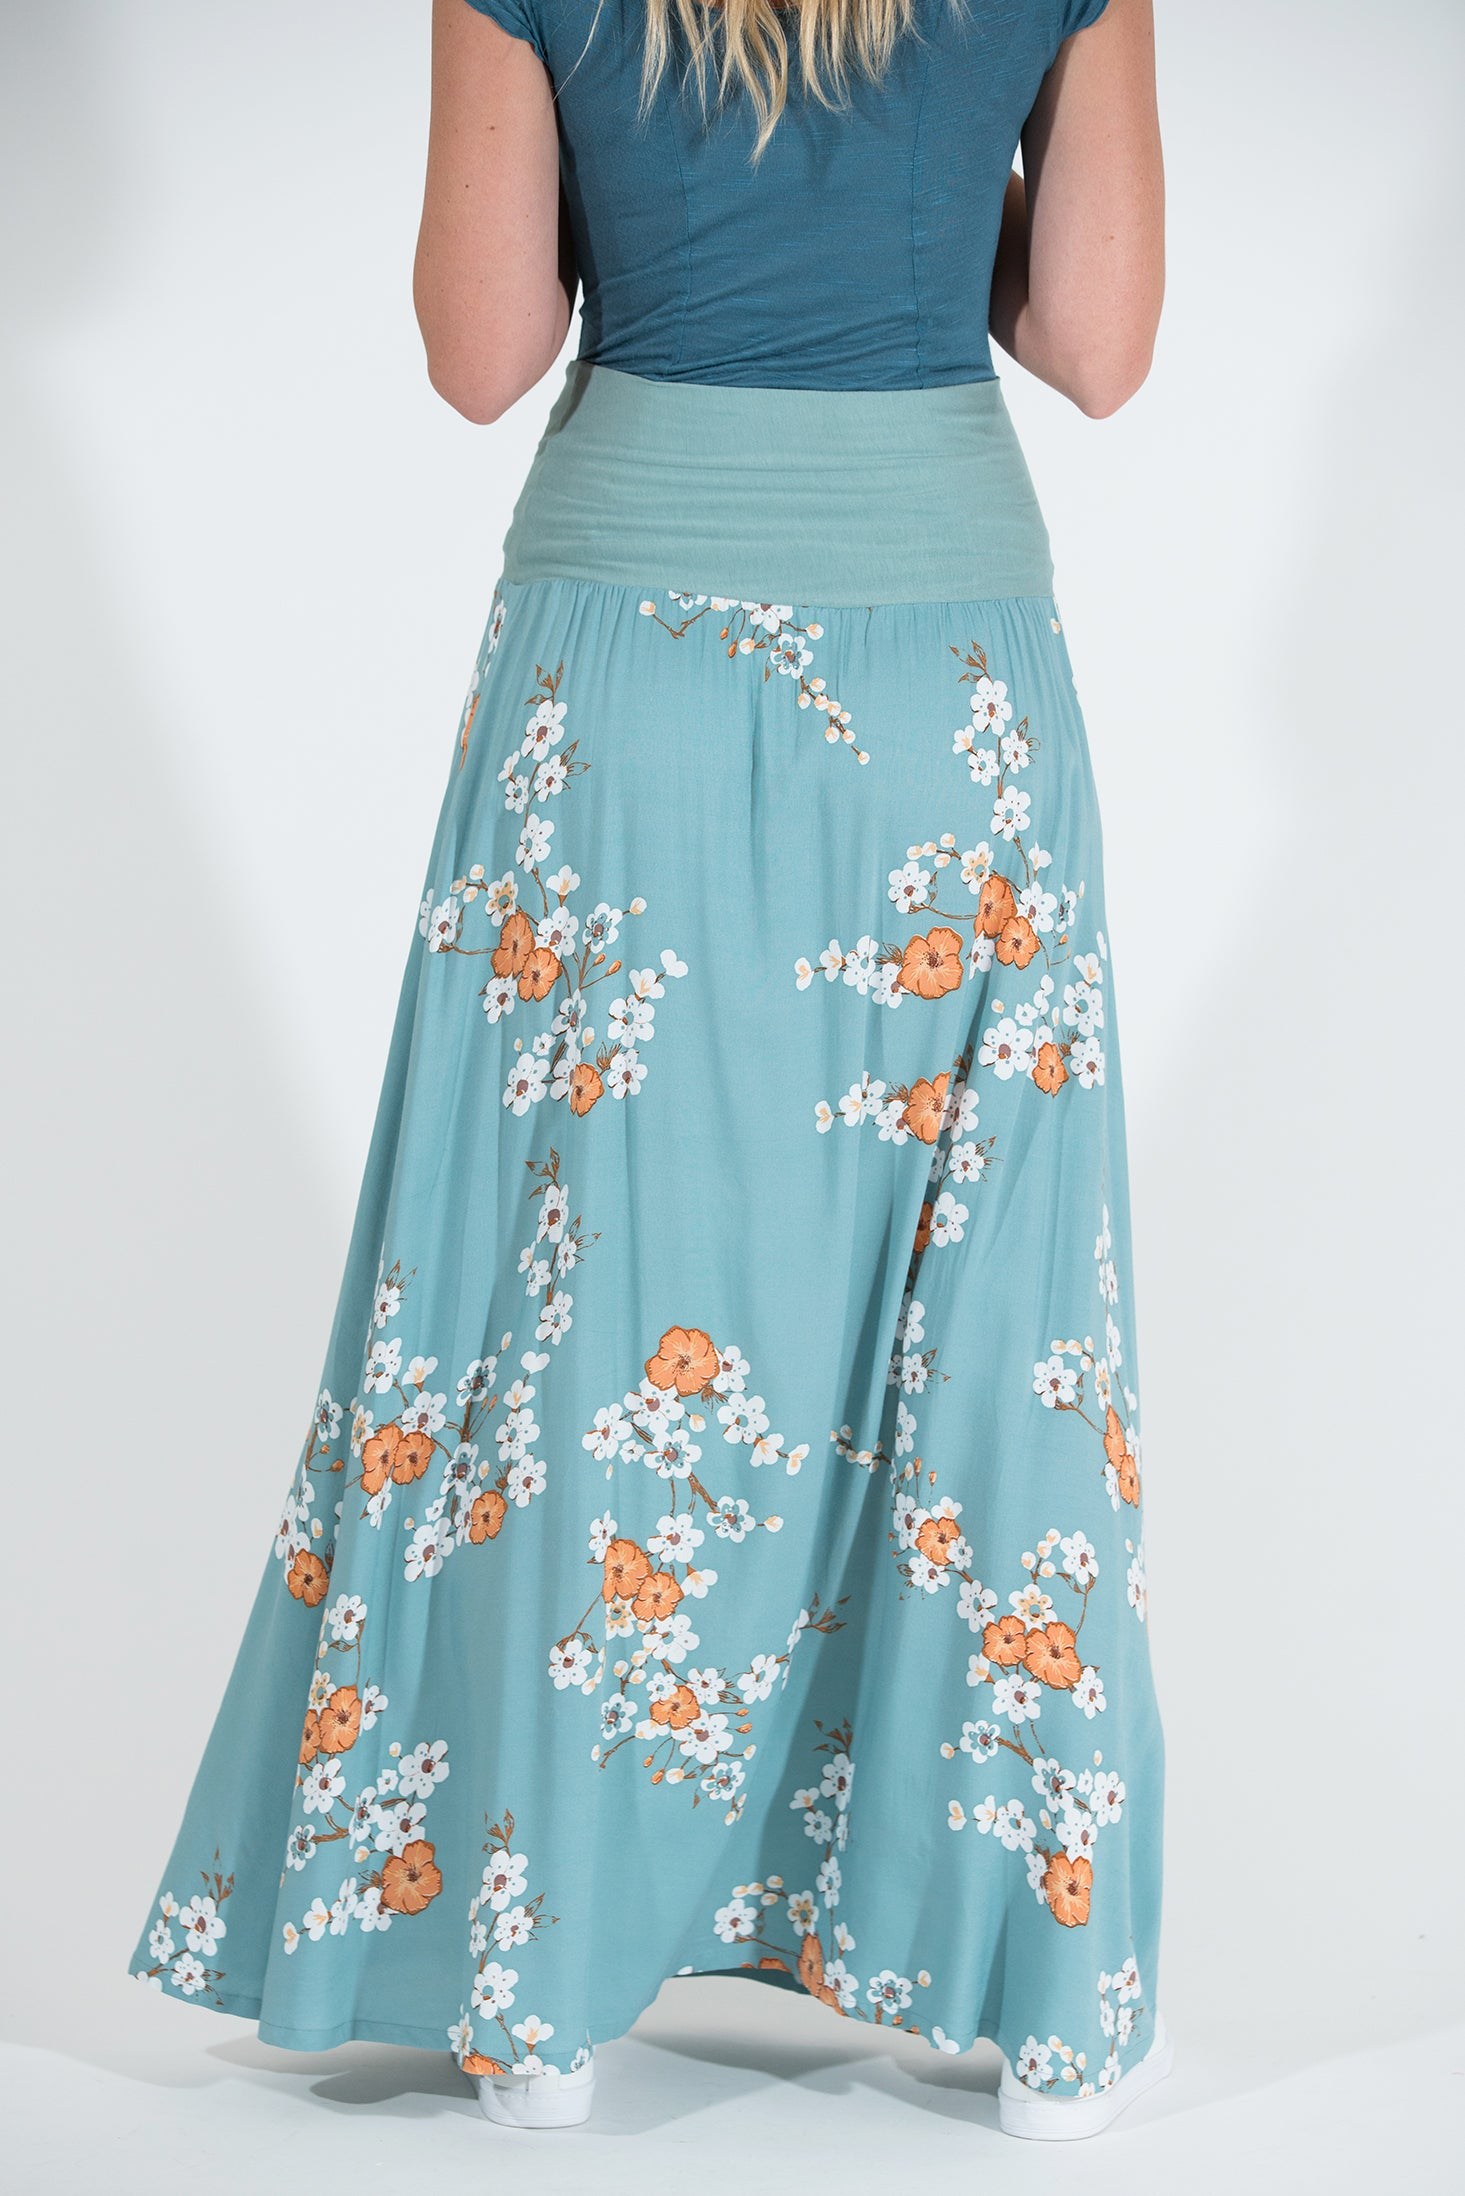 Poppy Skirt - Orange Cosmos